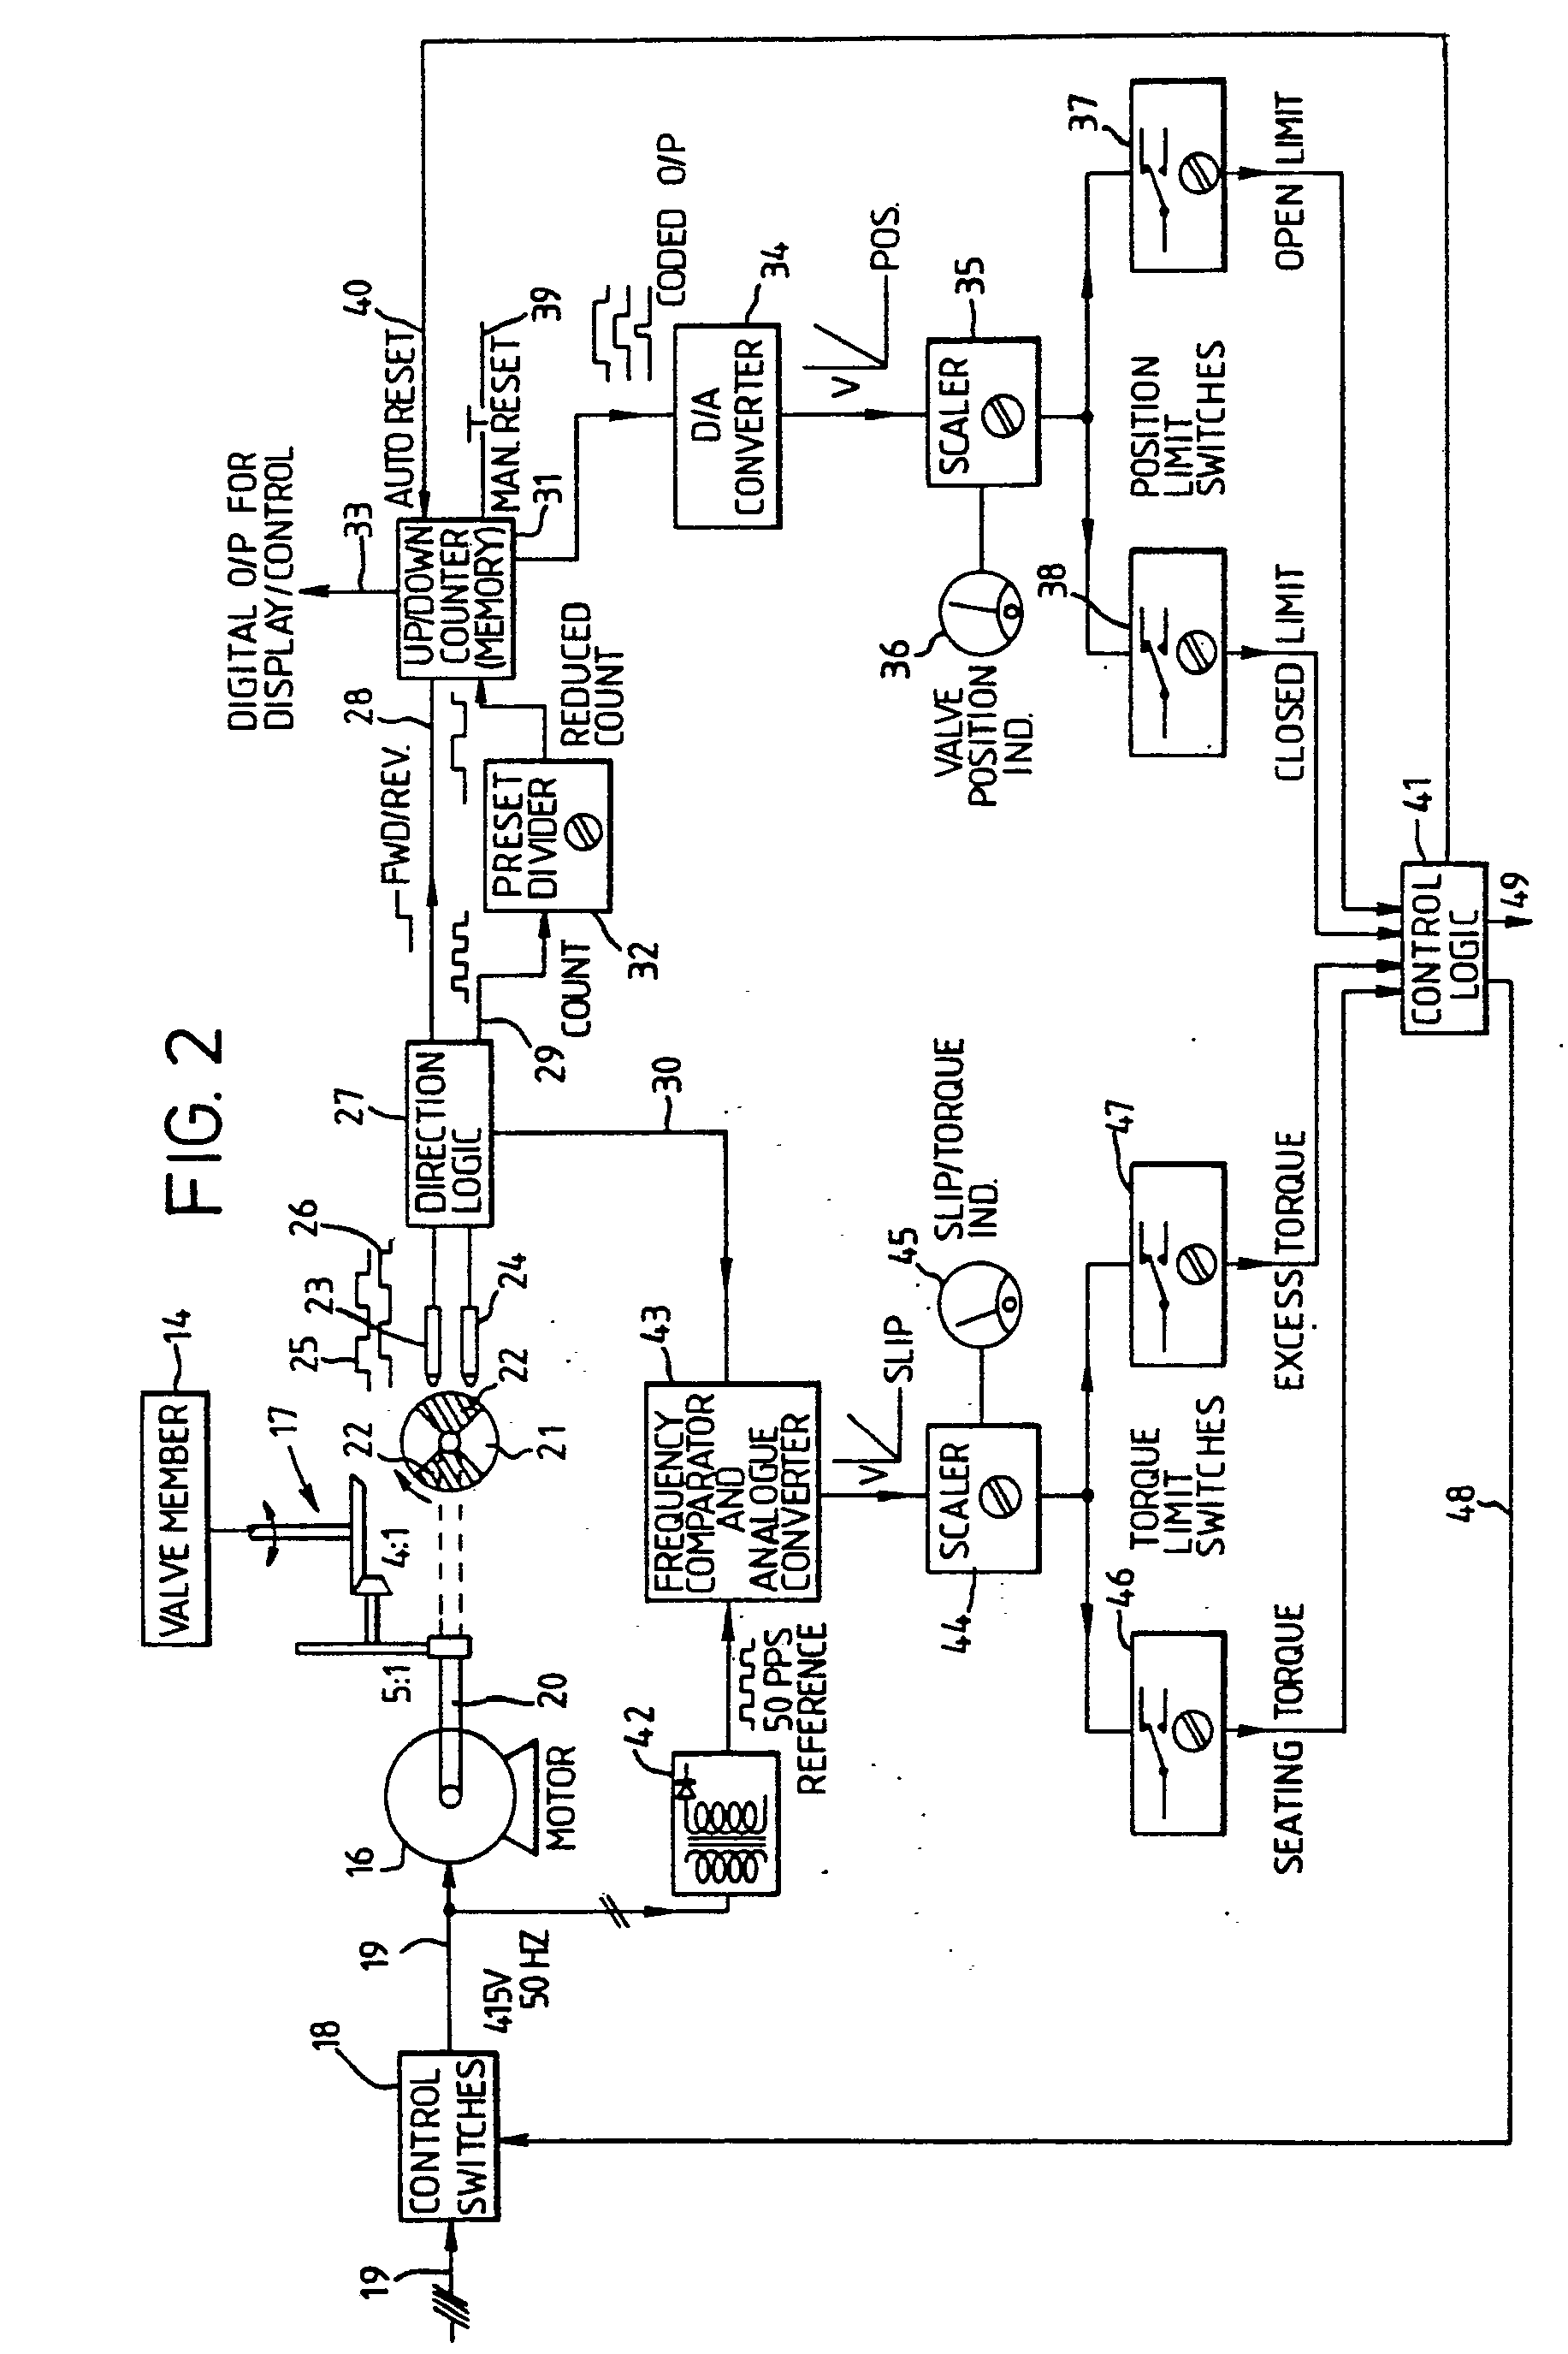 patent ep0050960b1 - motor operated valve